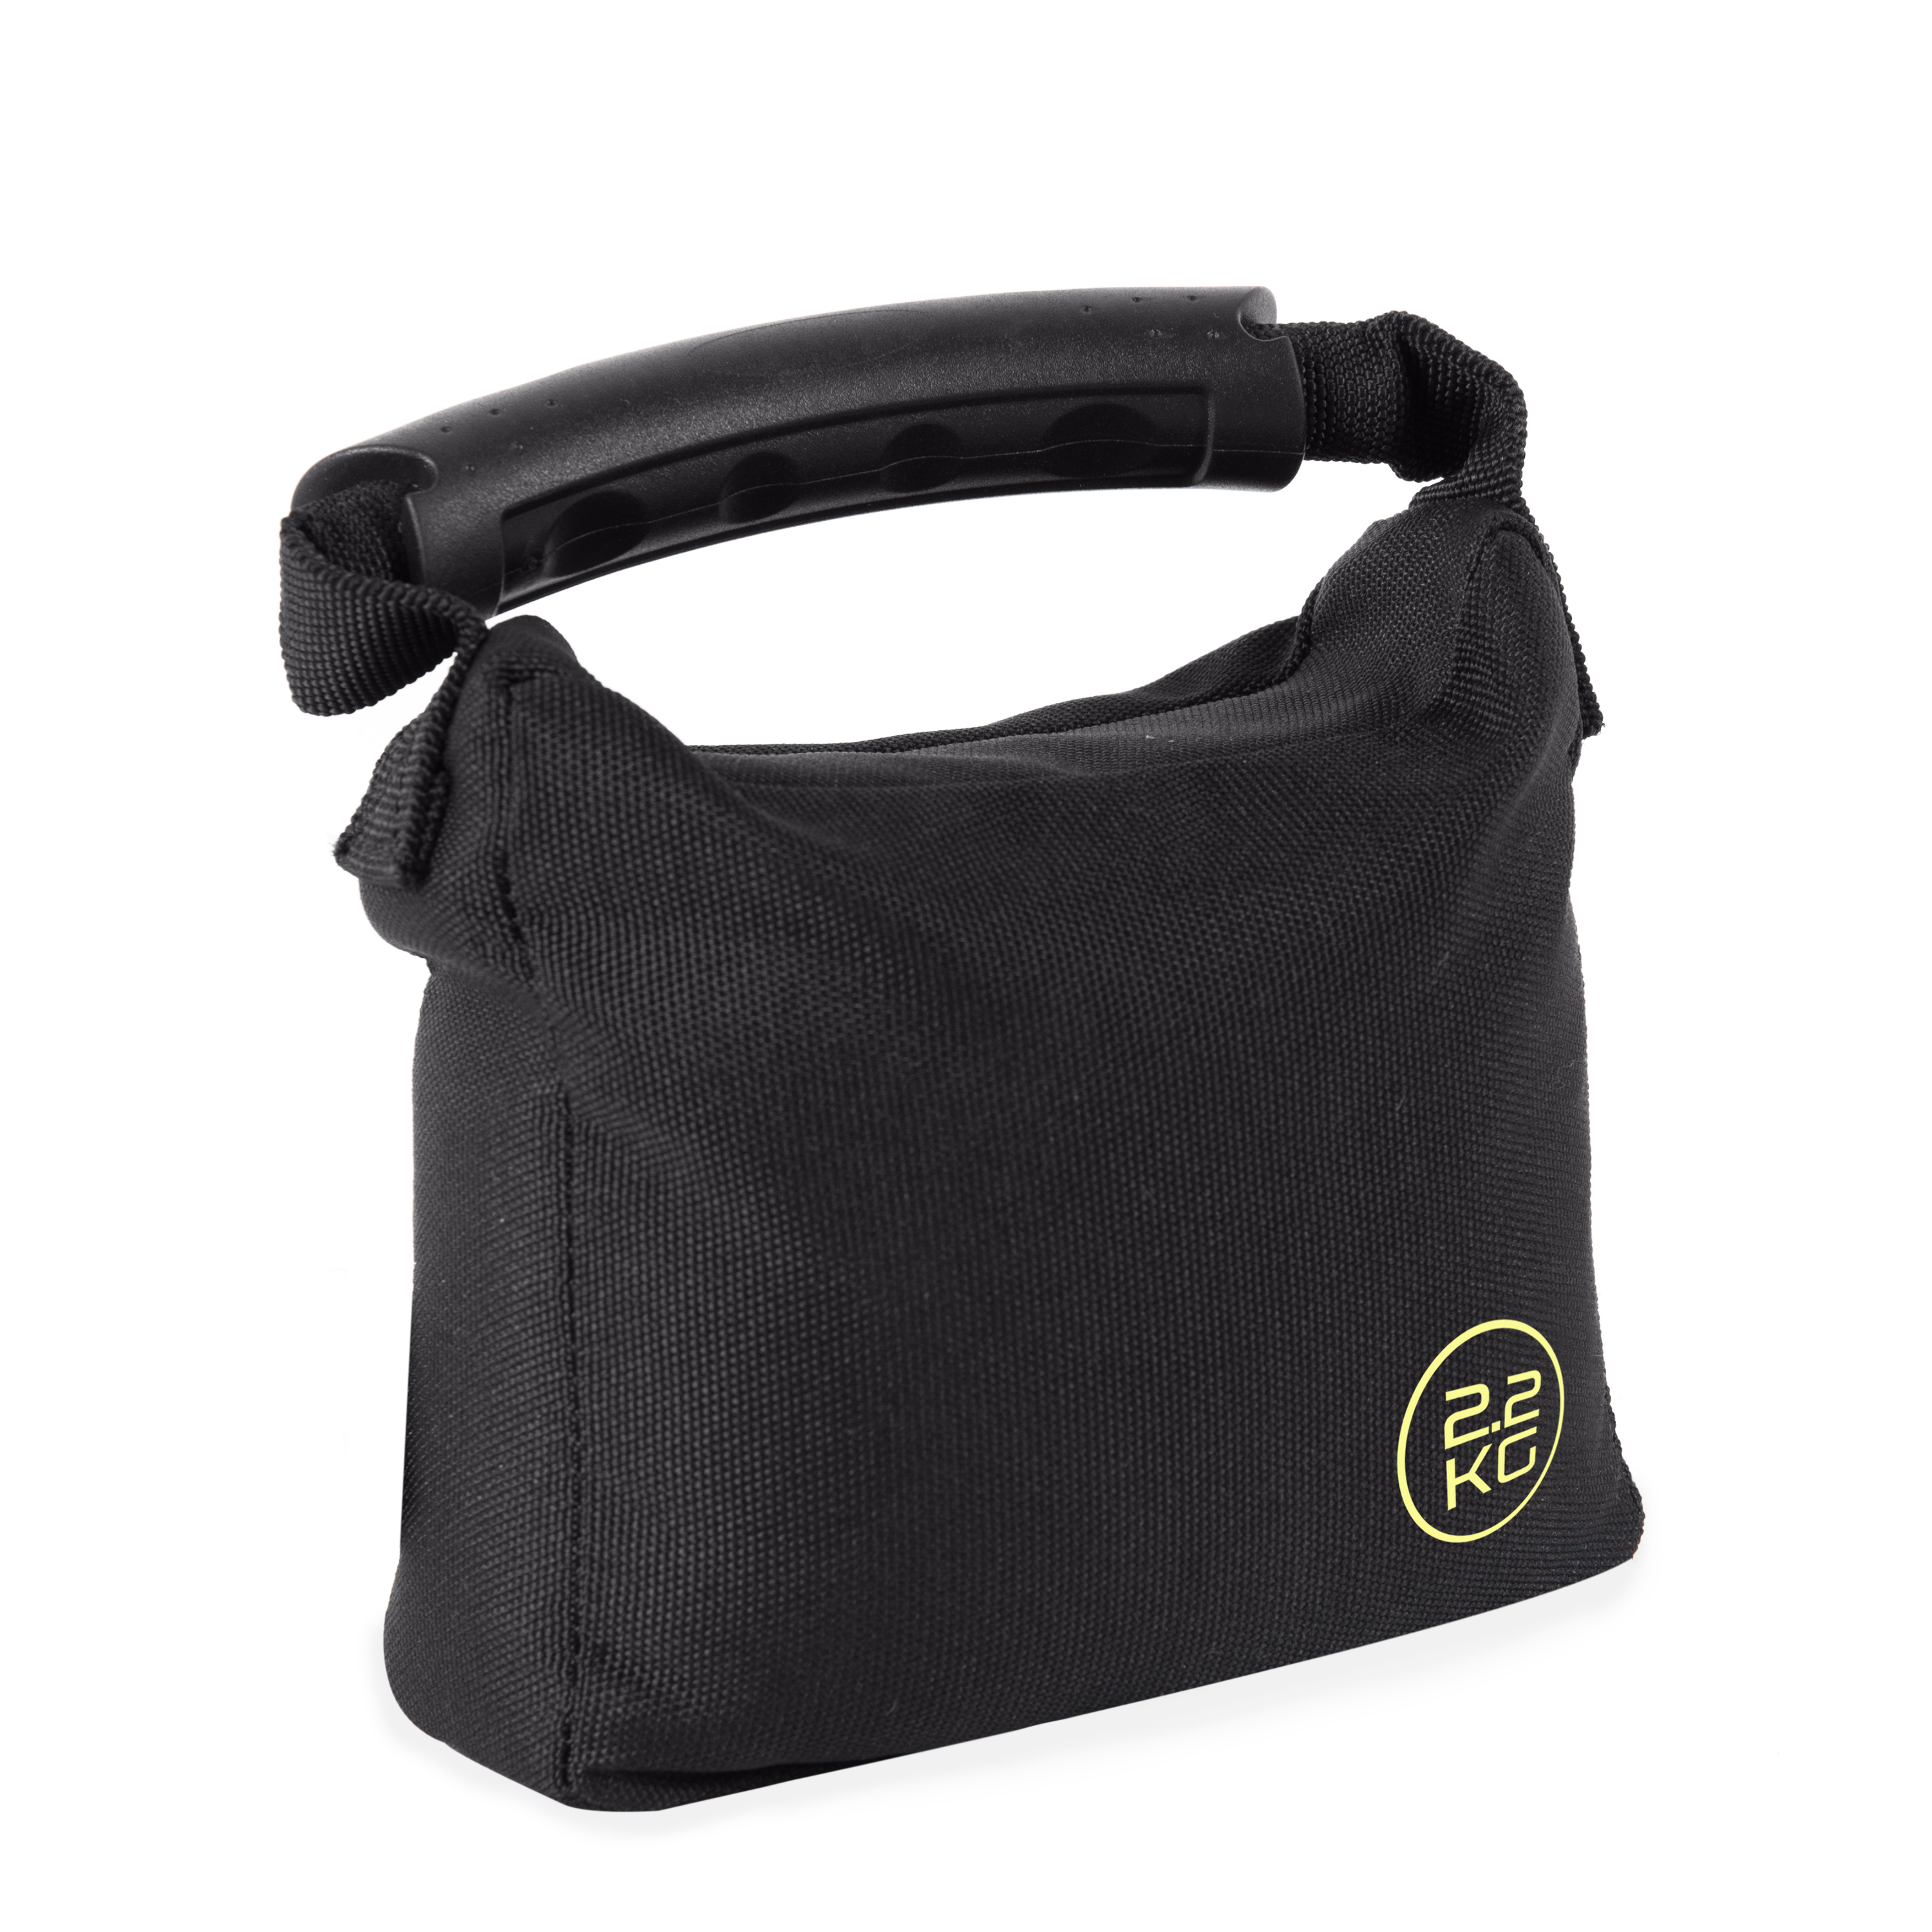 CAP Barbell 5-Pound Weighted Bag, Black